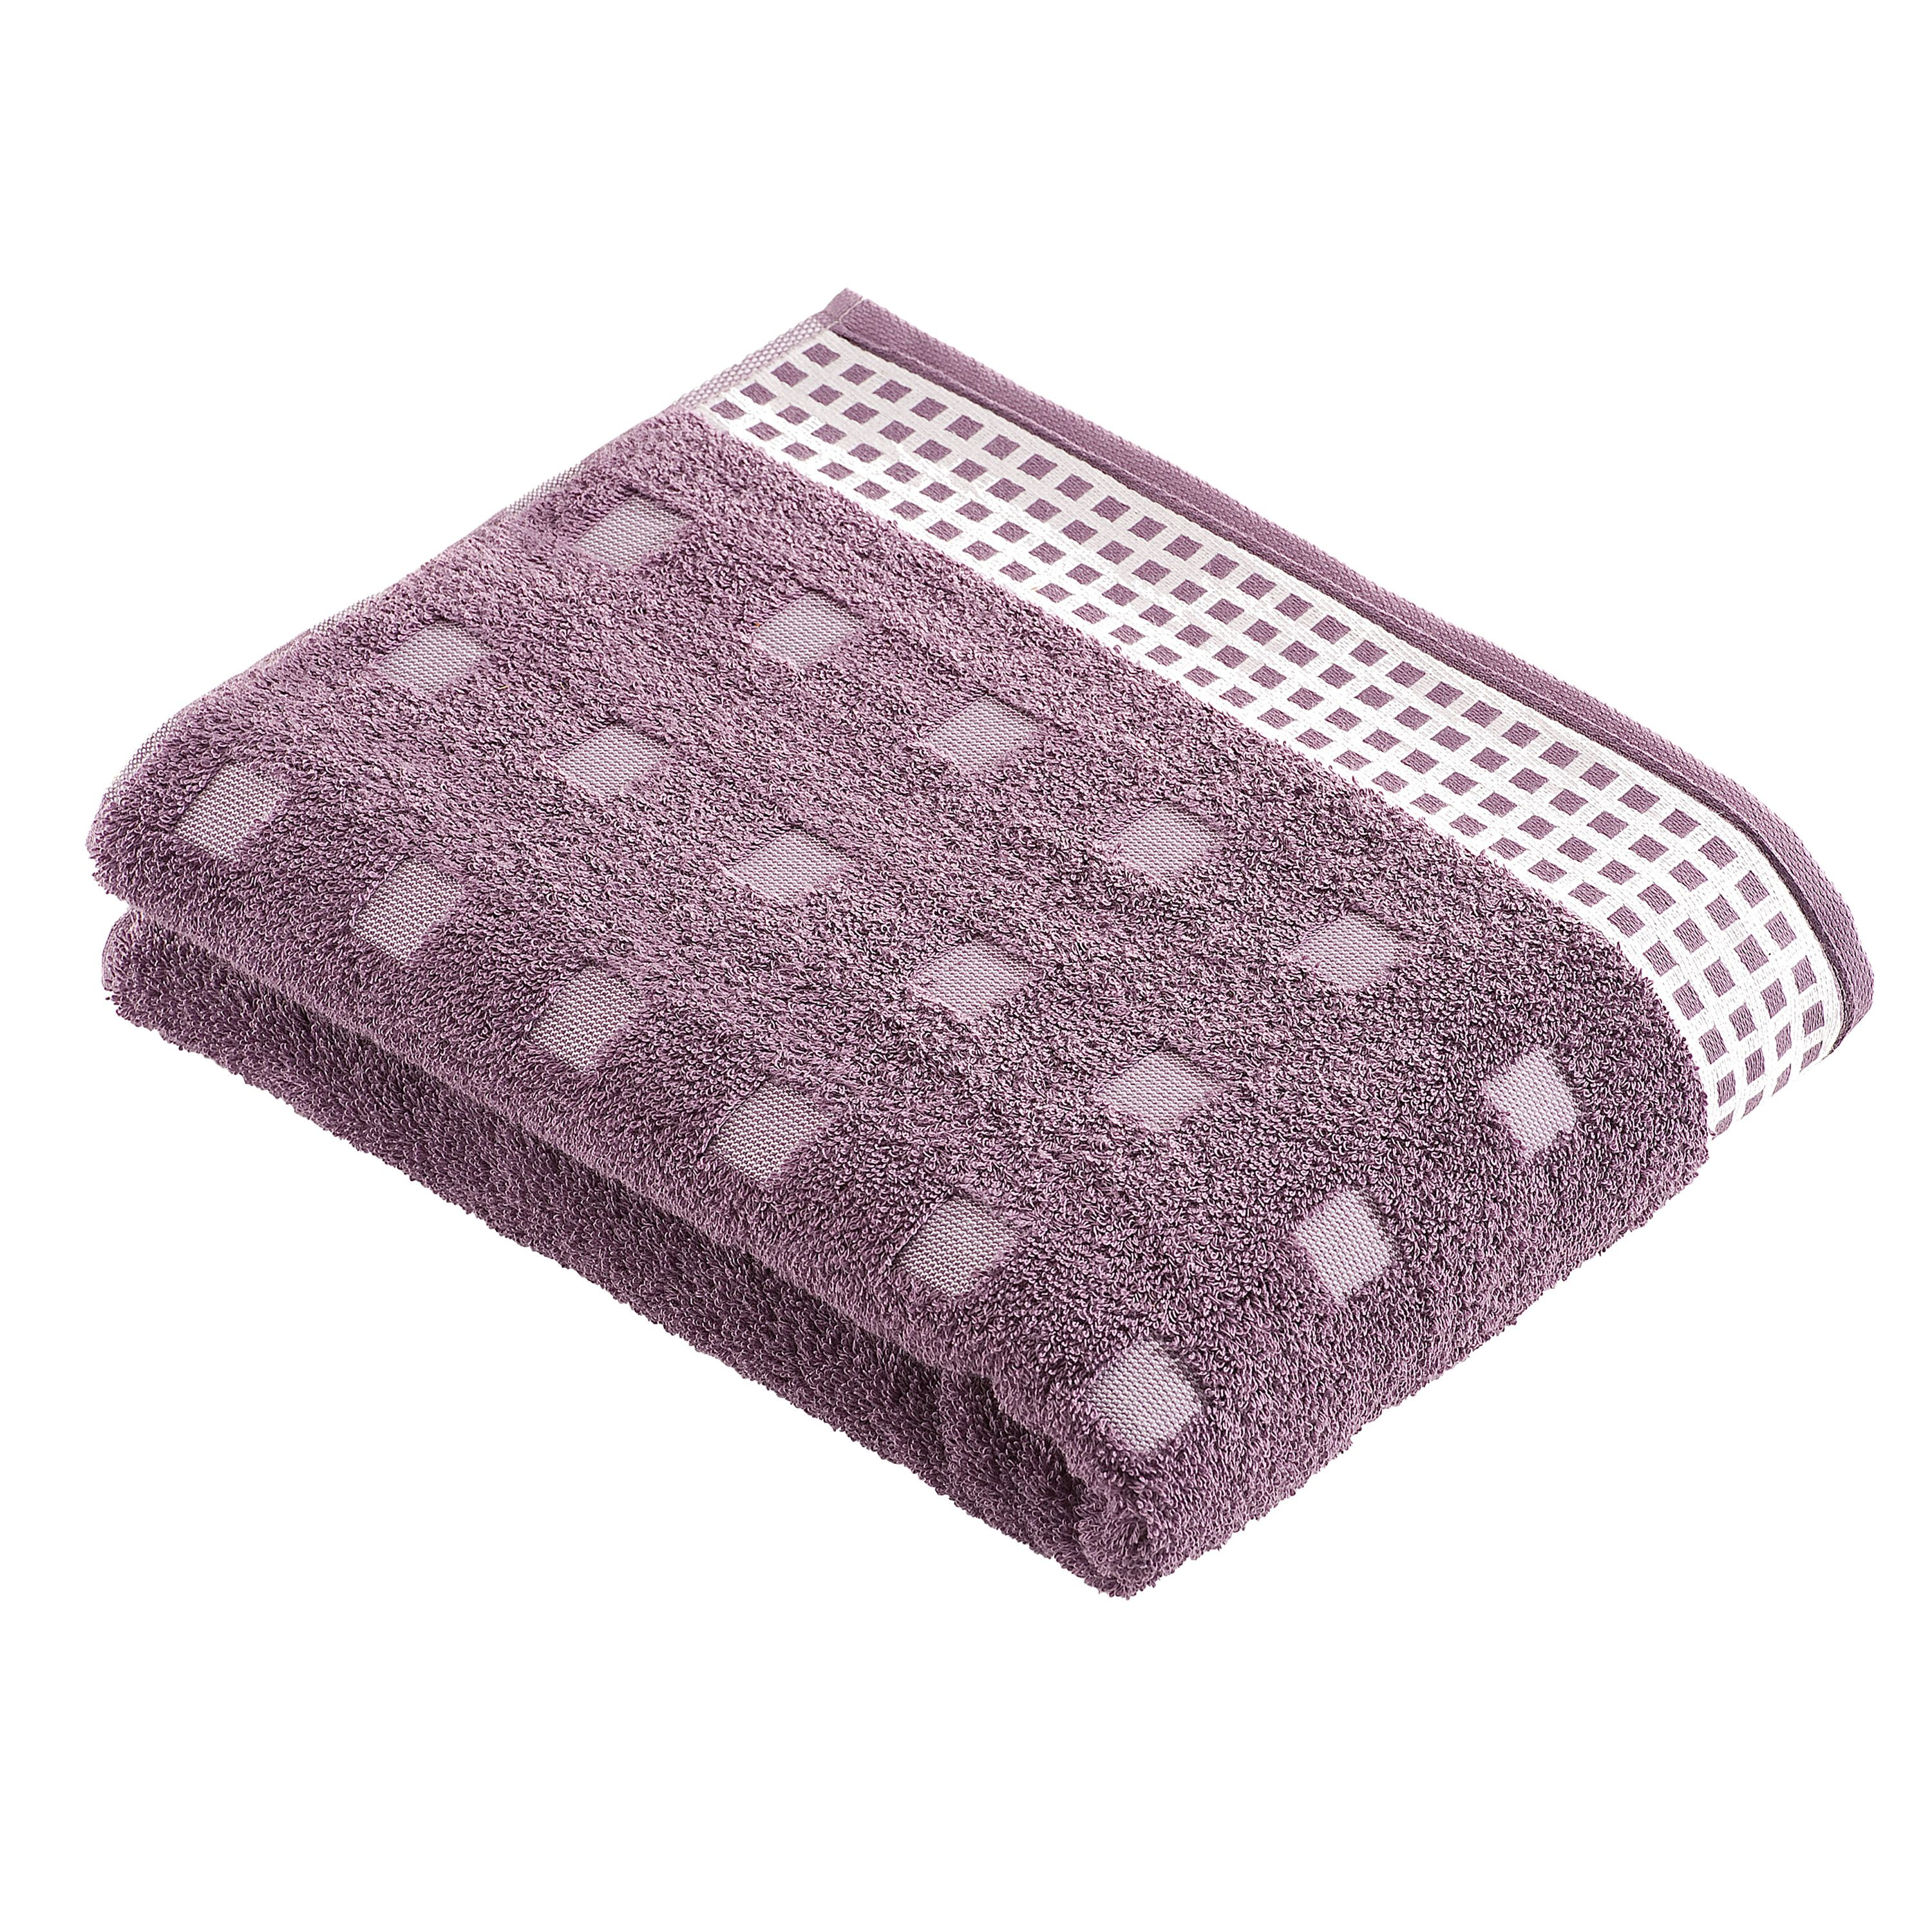 Country towel range in plum